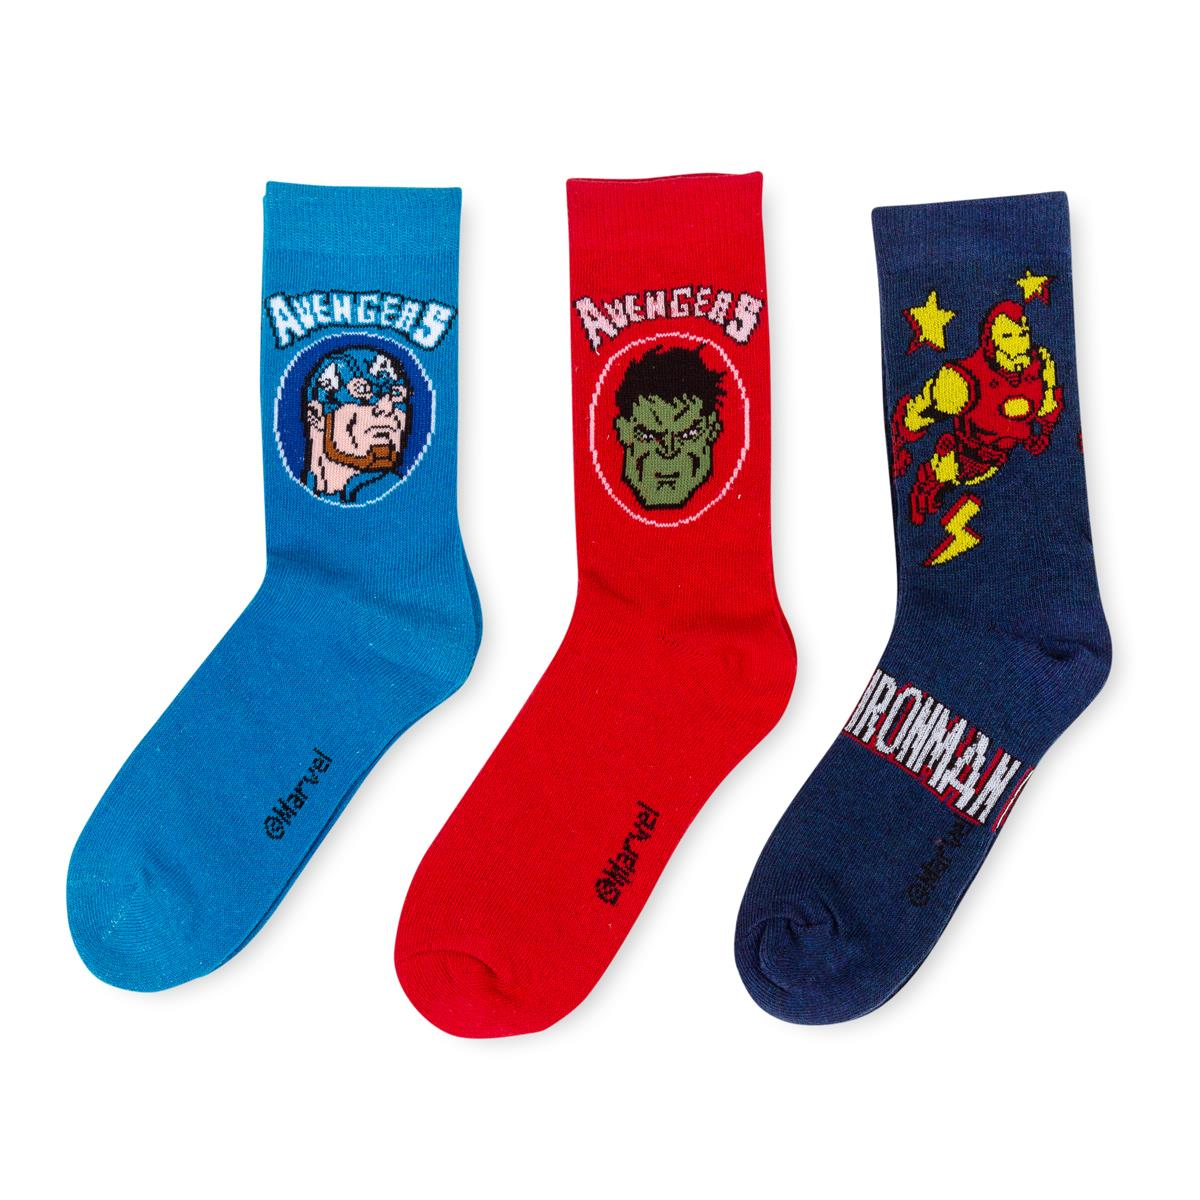 Assortment photos according to arrivals Socks Marvel Avengers for Boys